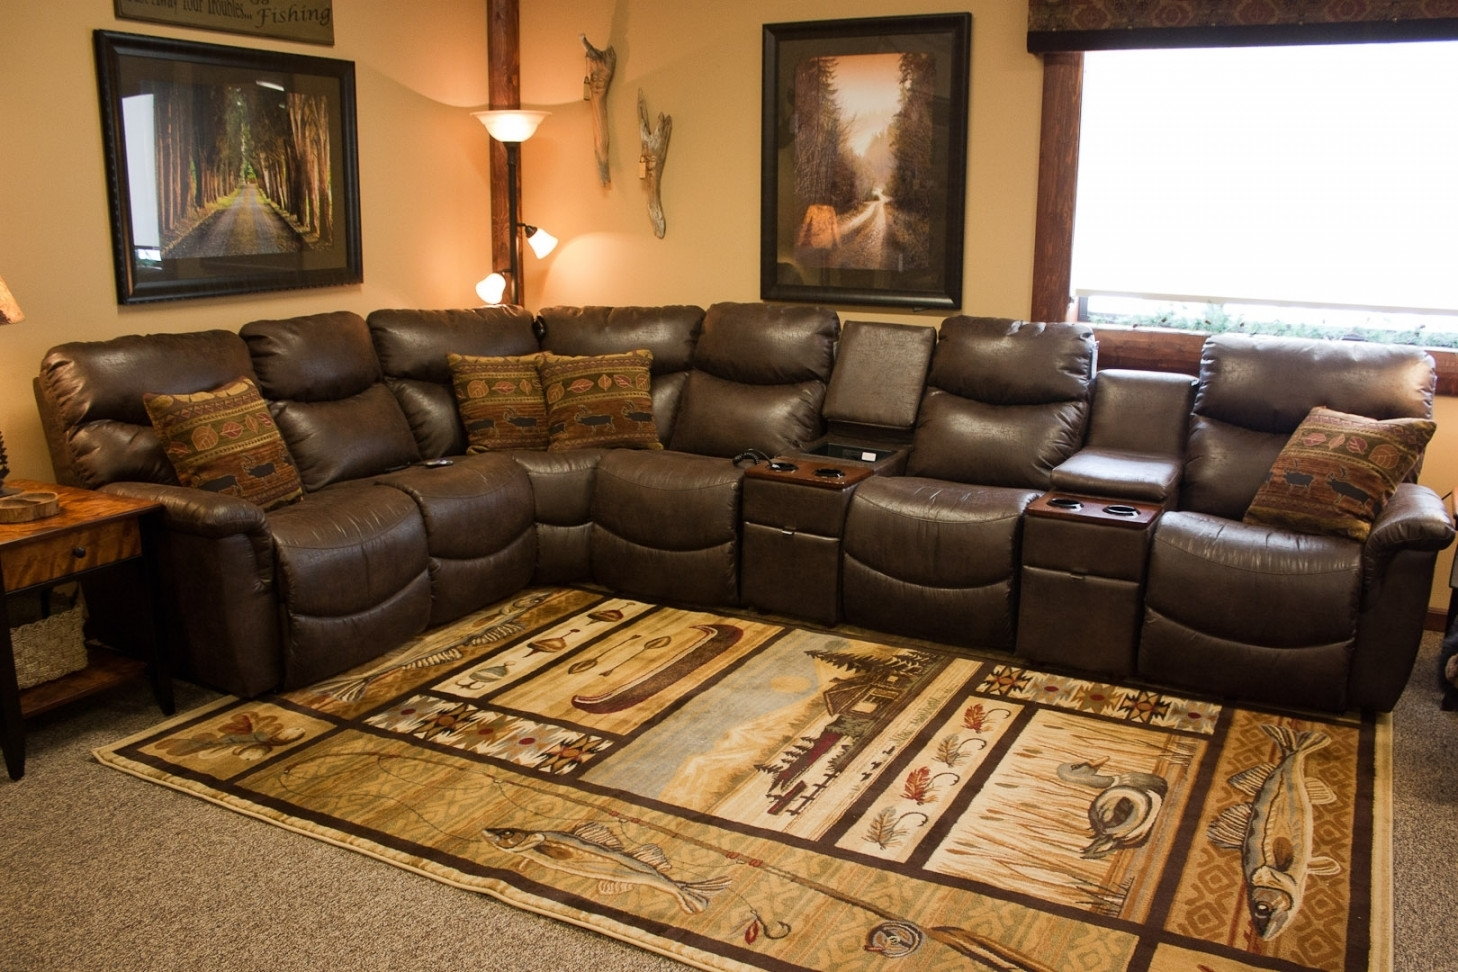 Lazy Boy Sectional Sofas | Home Design And Decorating Ideas Intended For Lazy Boy Sectional Sofas (Image 6 of 10)